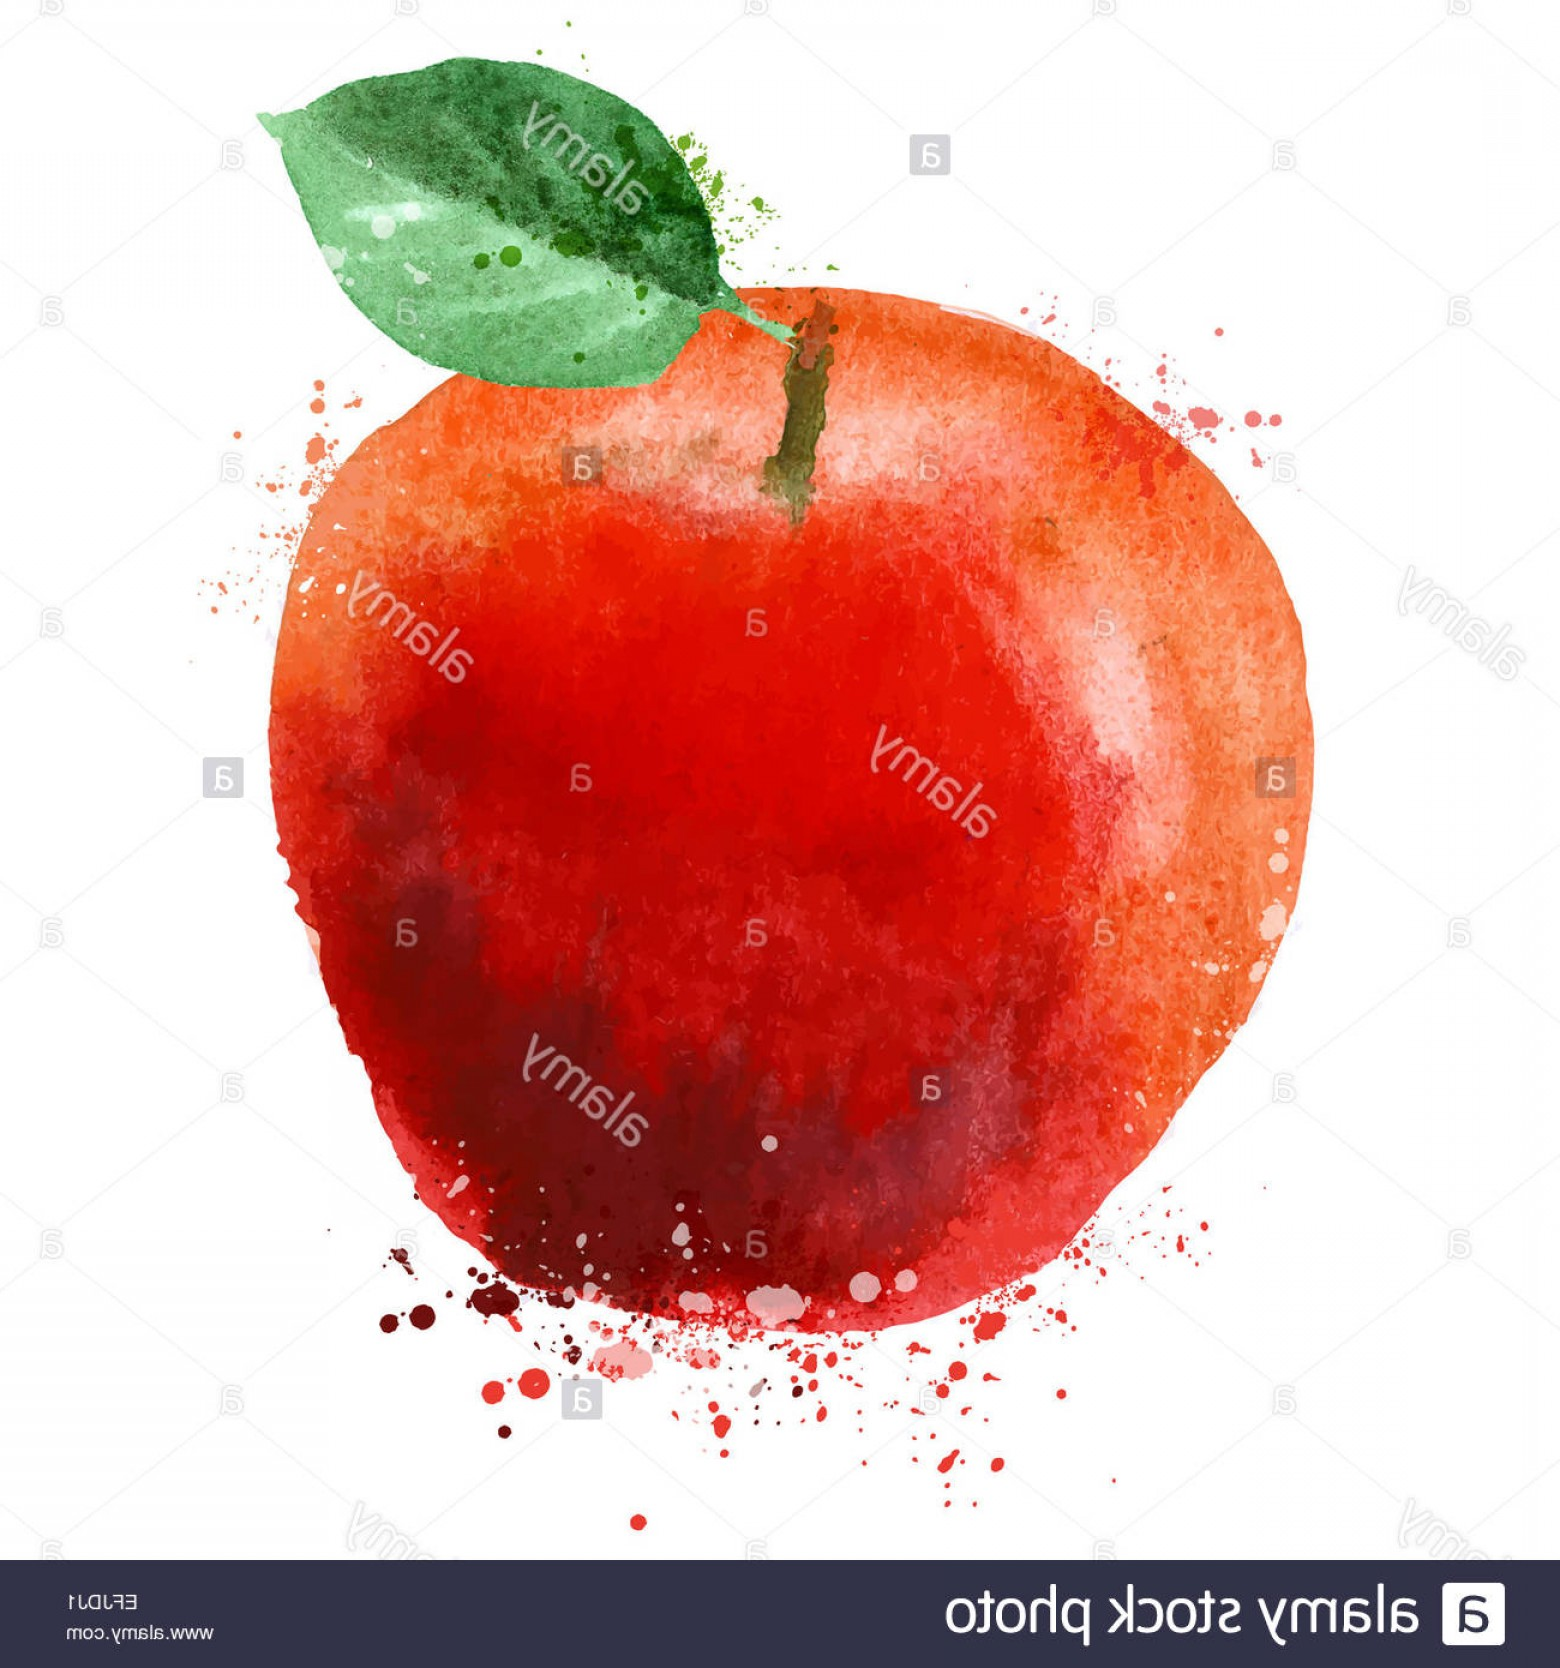 Red Apple Vector Logo: Stock Photo Apple Vector Logo Design Template Fruit Or Food Icon